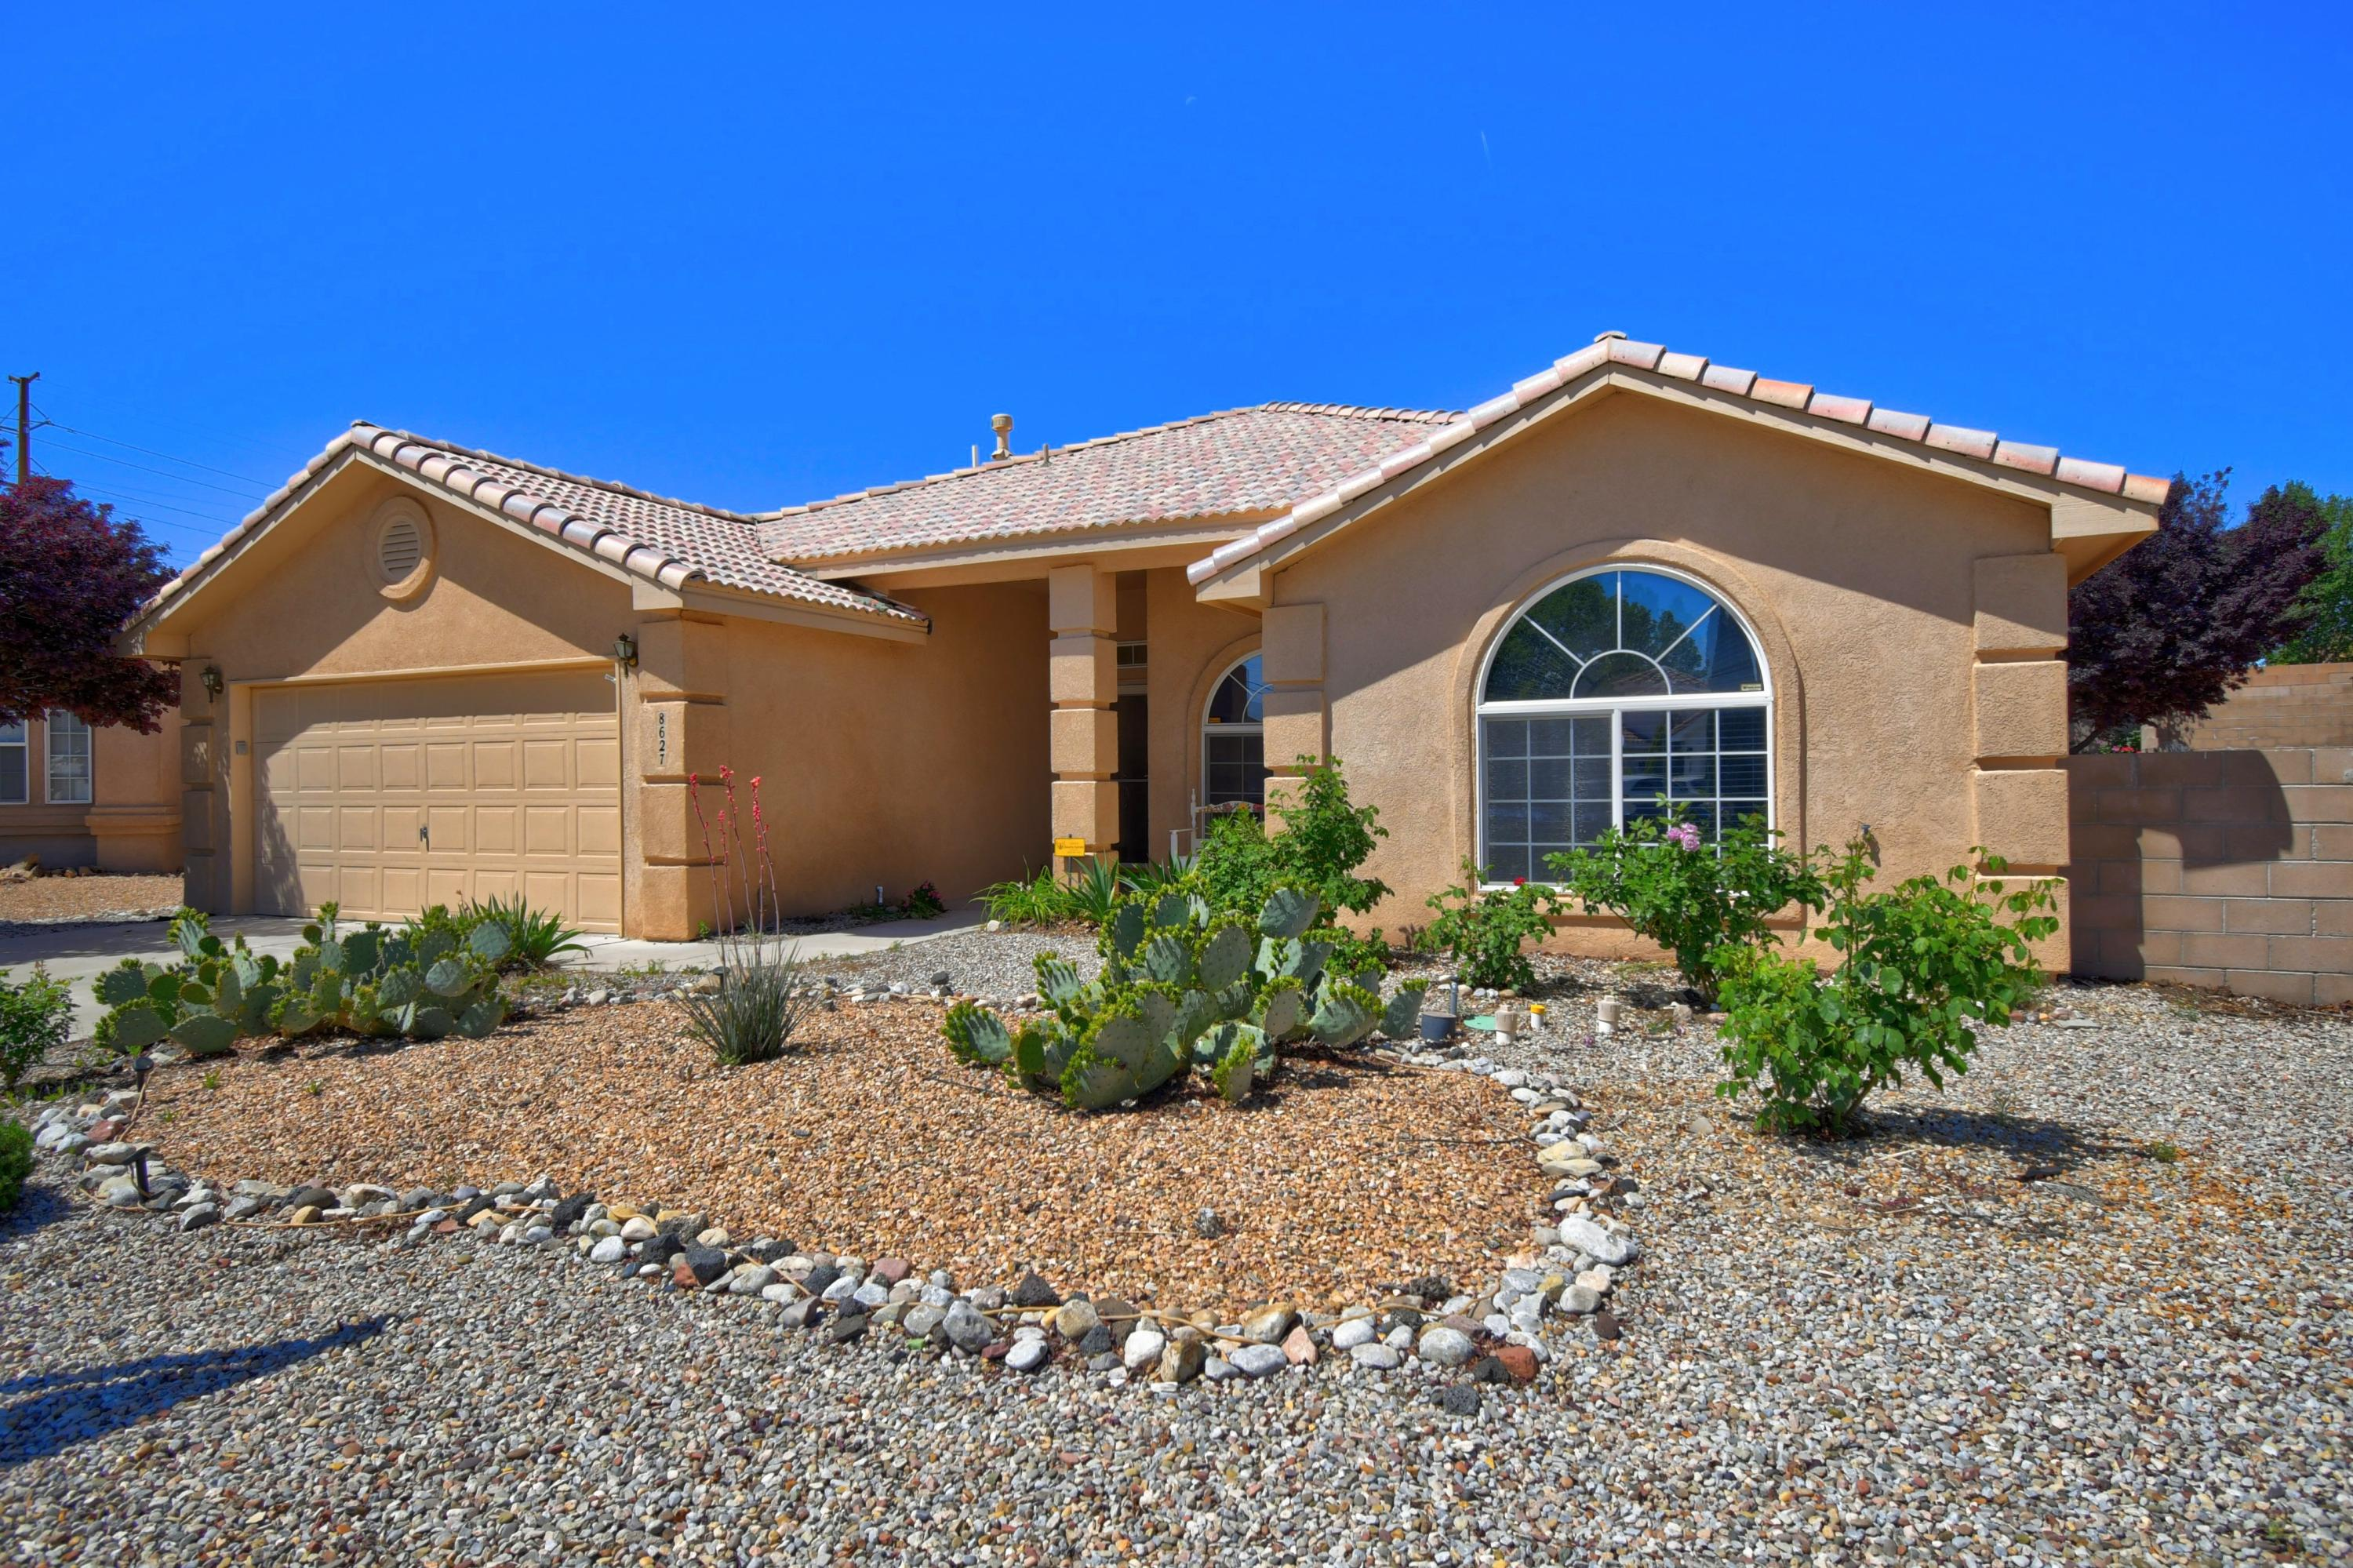 8627 GALATIN Court NW, Albuquerque, NM 87120 - Albuquerque, NM real estate listing